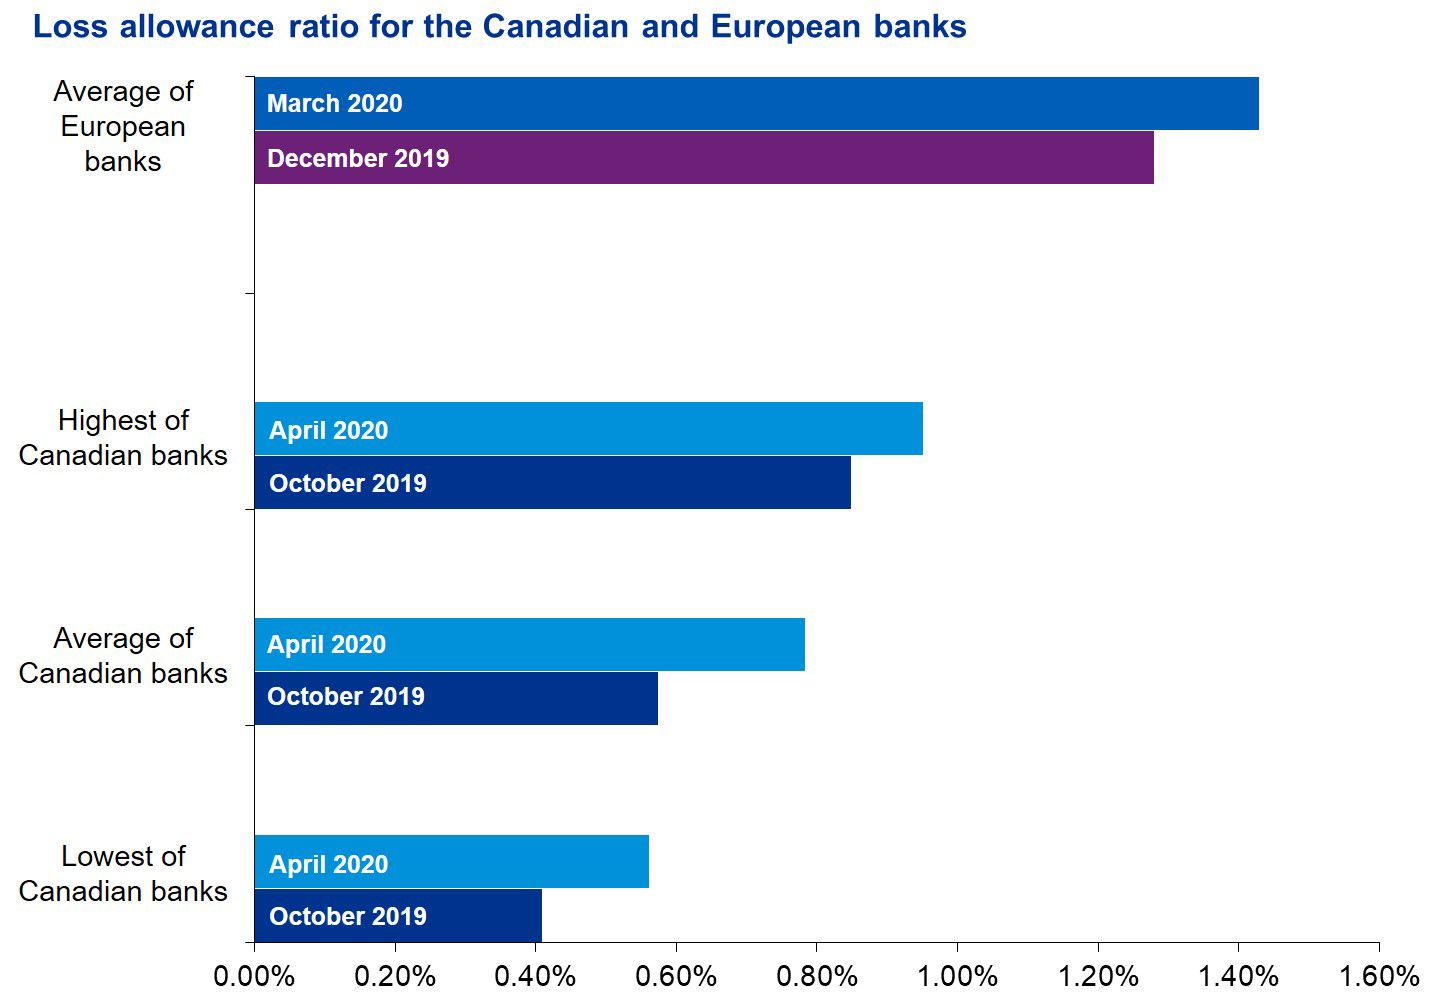 Loss allowance for Canadian and European banks